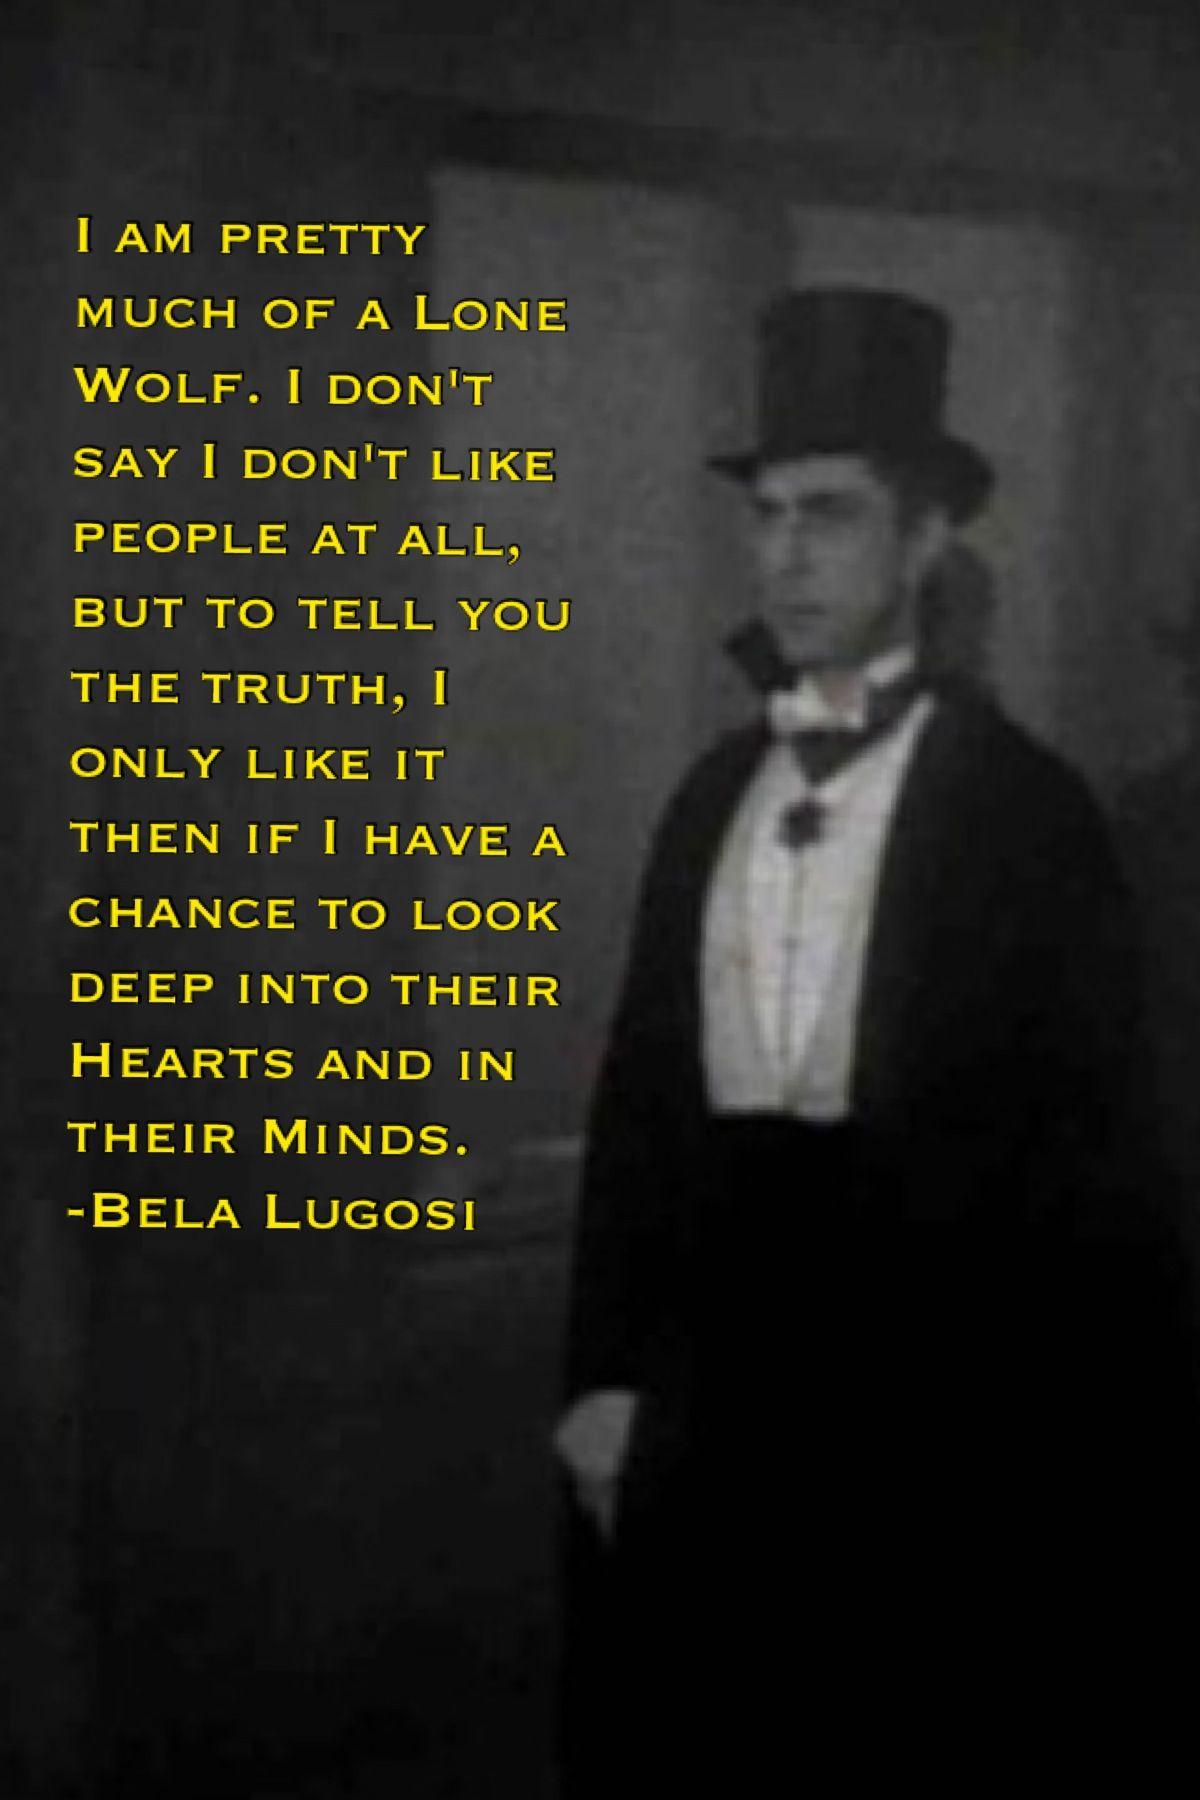 Lone wolf quotes - photo#7